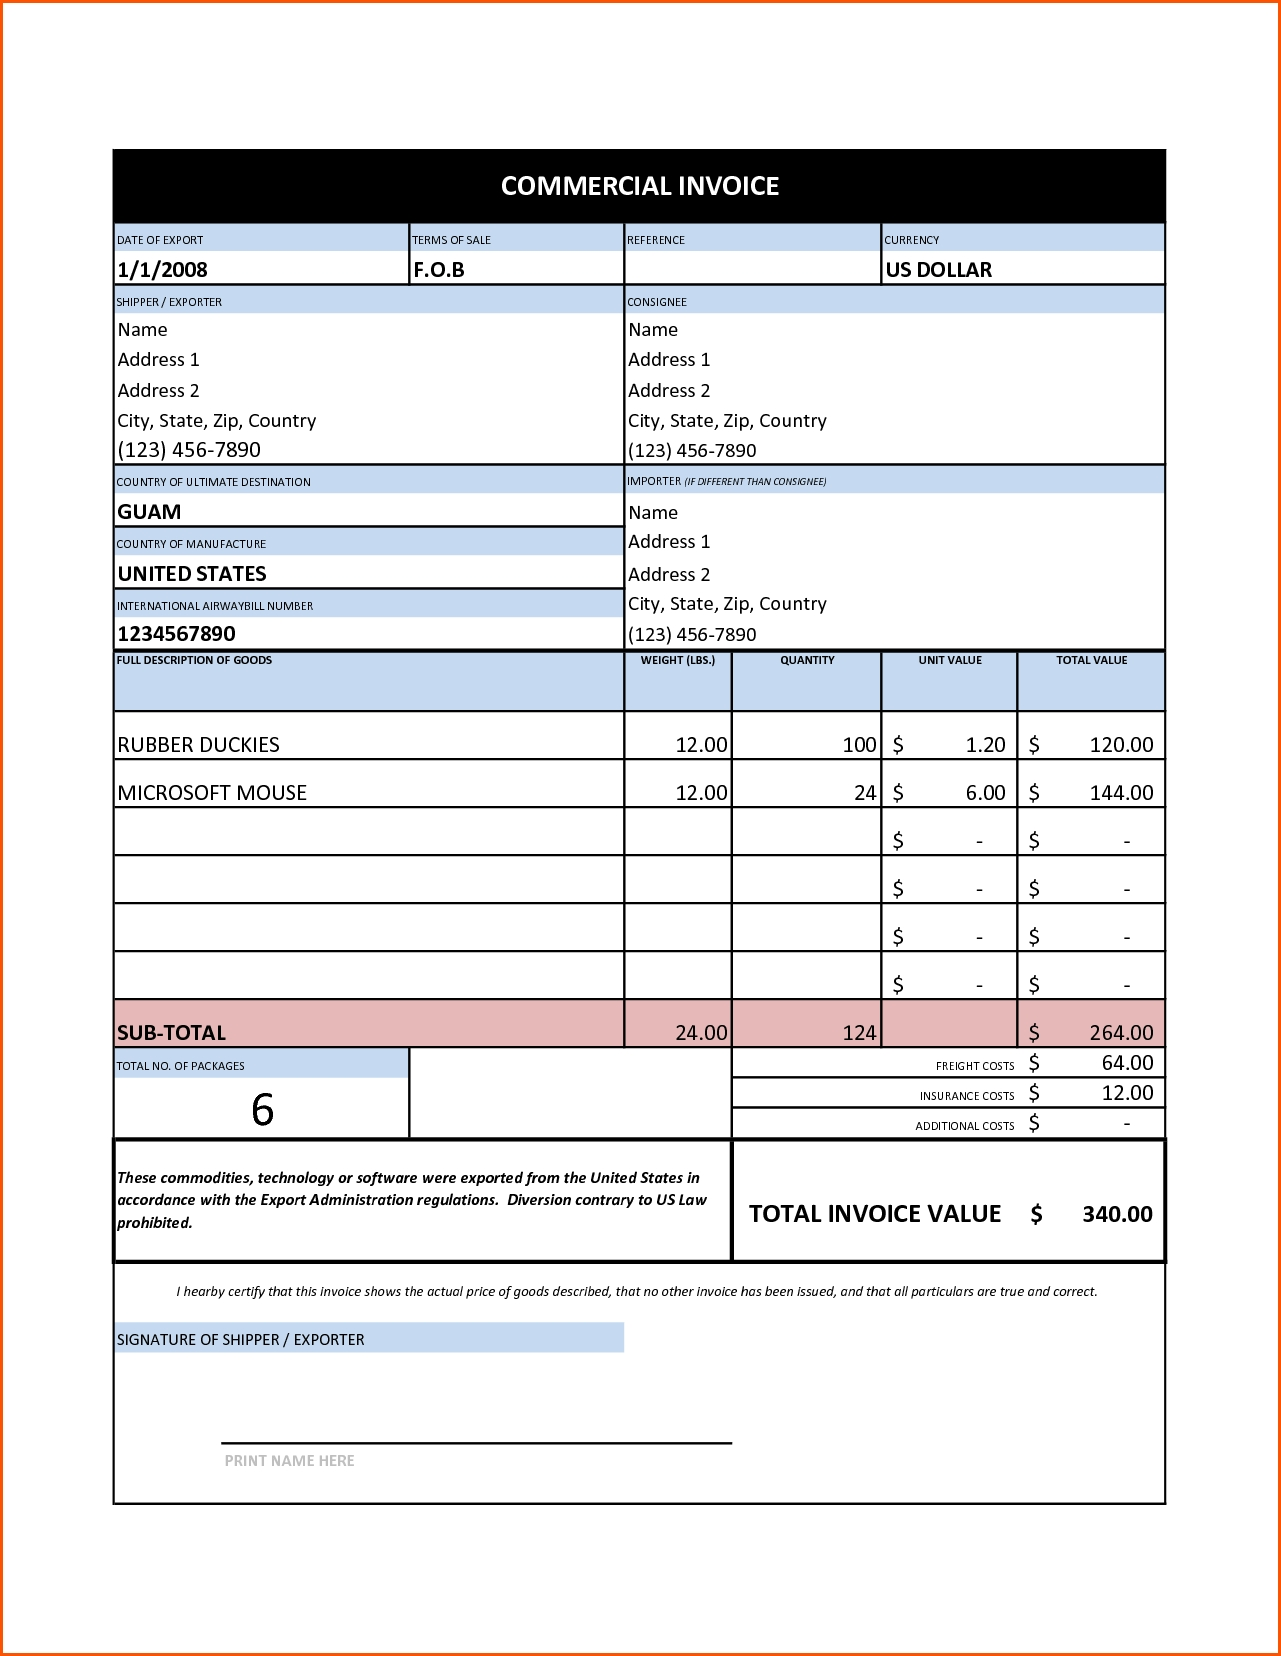 Commercial Invoice Sample Excel Invoice Template Ideas – Sample Commercial Invoice